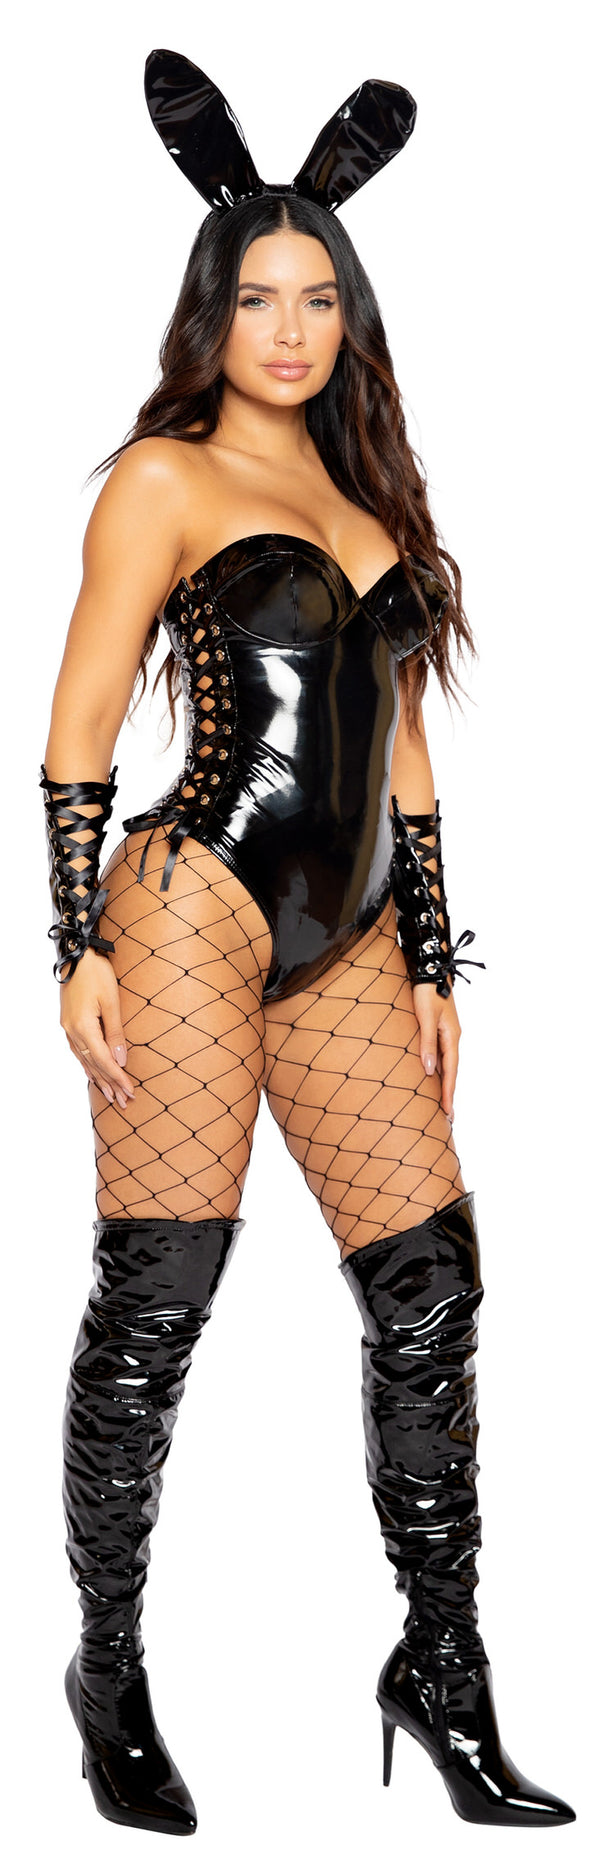 2pc Kinky Bunny Costume